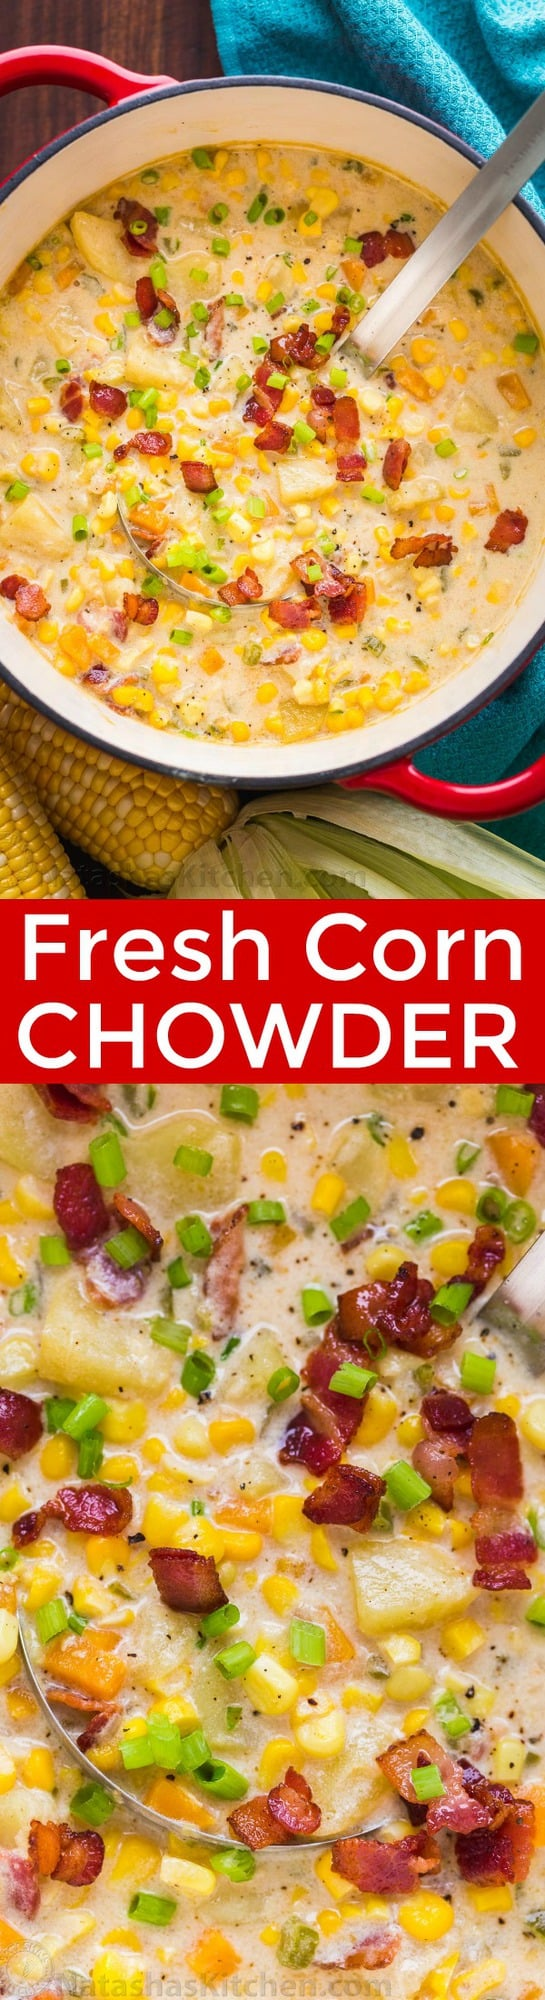 Fresh Corn Chowder recipe is loaded with summer produce at its peak of freshness. This is a crowd-pleasing chowder that is perfect for entertaining. | natashaskitchen.com